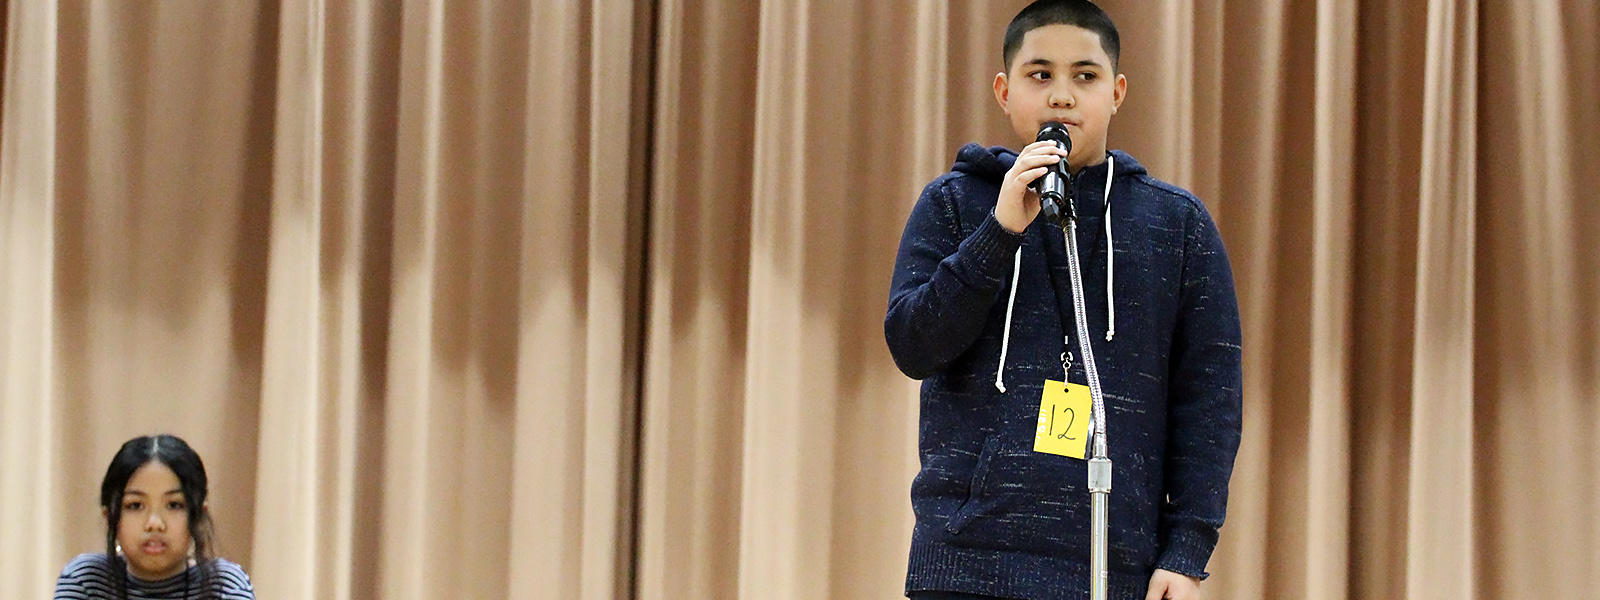 John Mills 6th-grade student Jayden Sanchez competes at this year's District Spelling Bee.